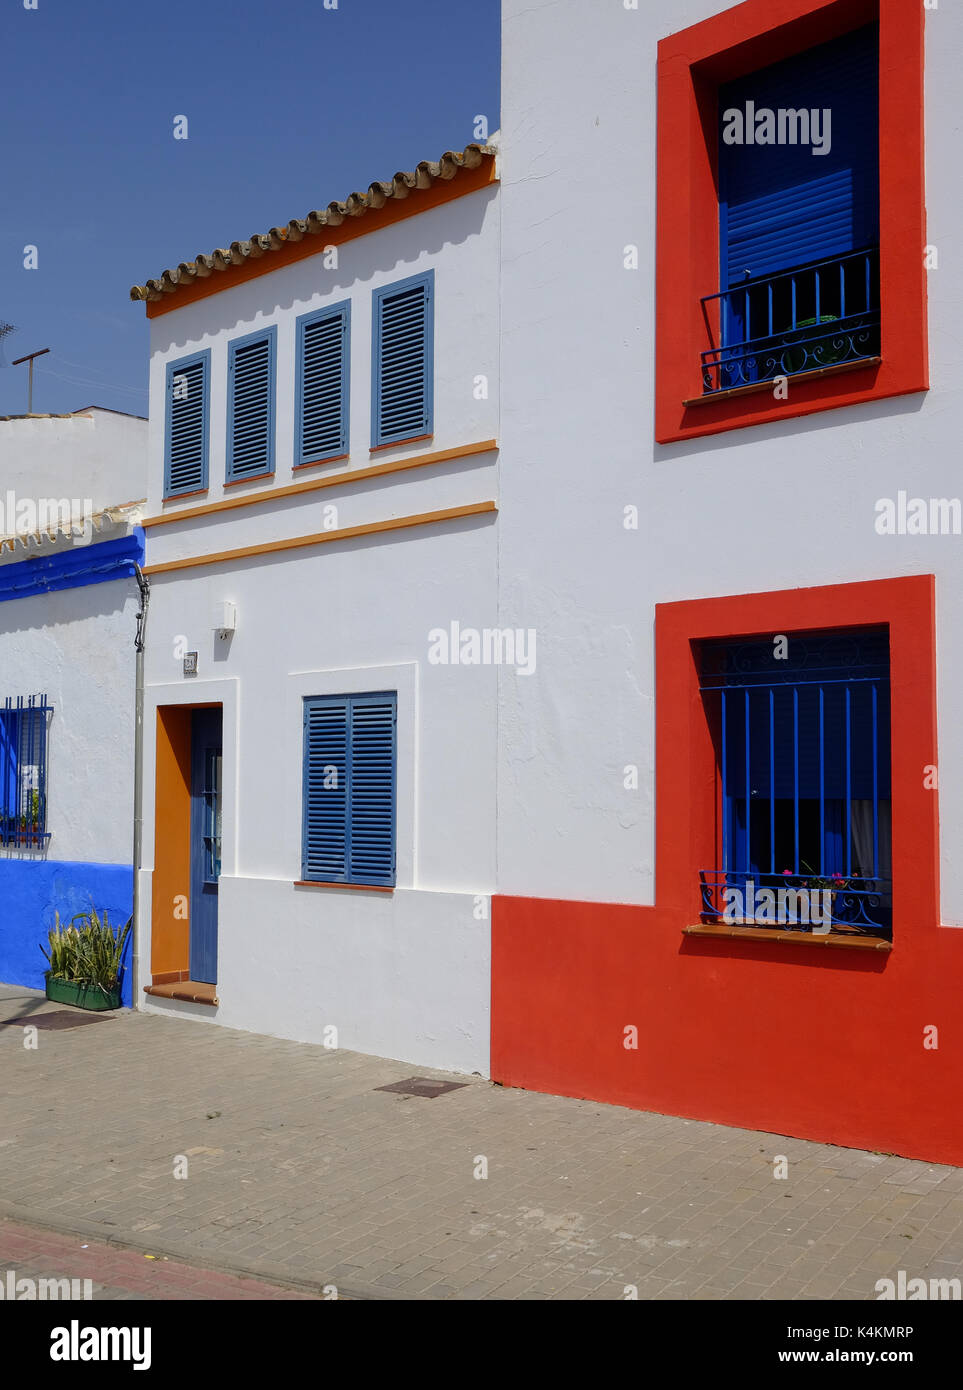 brightly painted houses in Isla del Moral, Spain - Stock Image